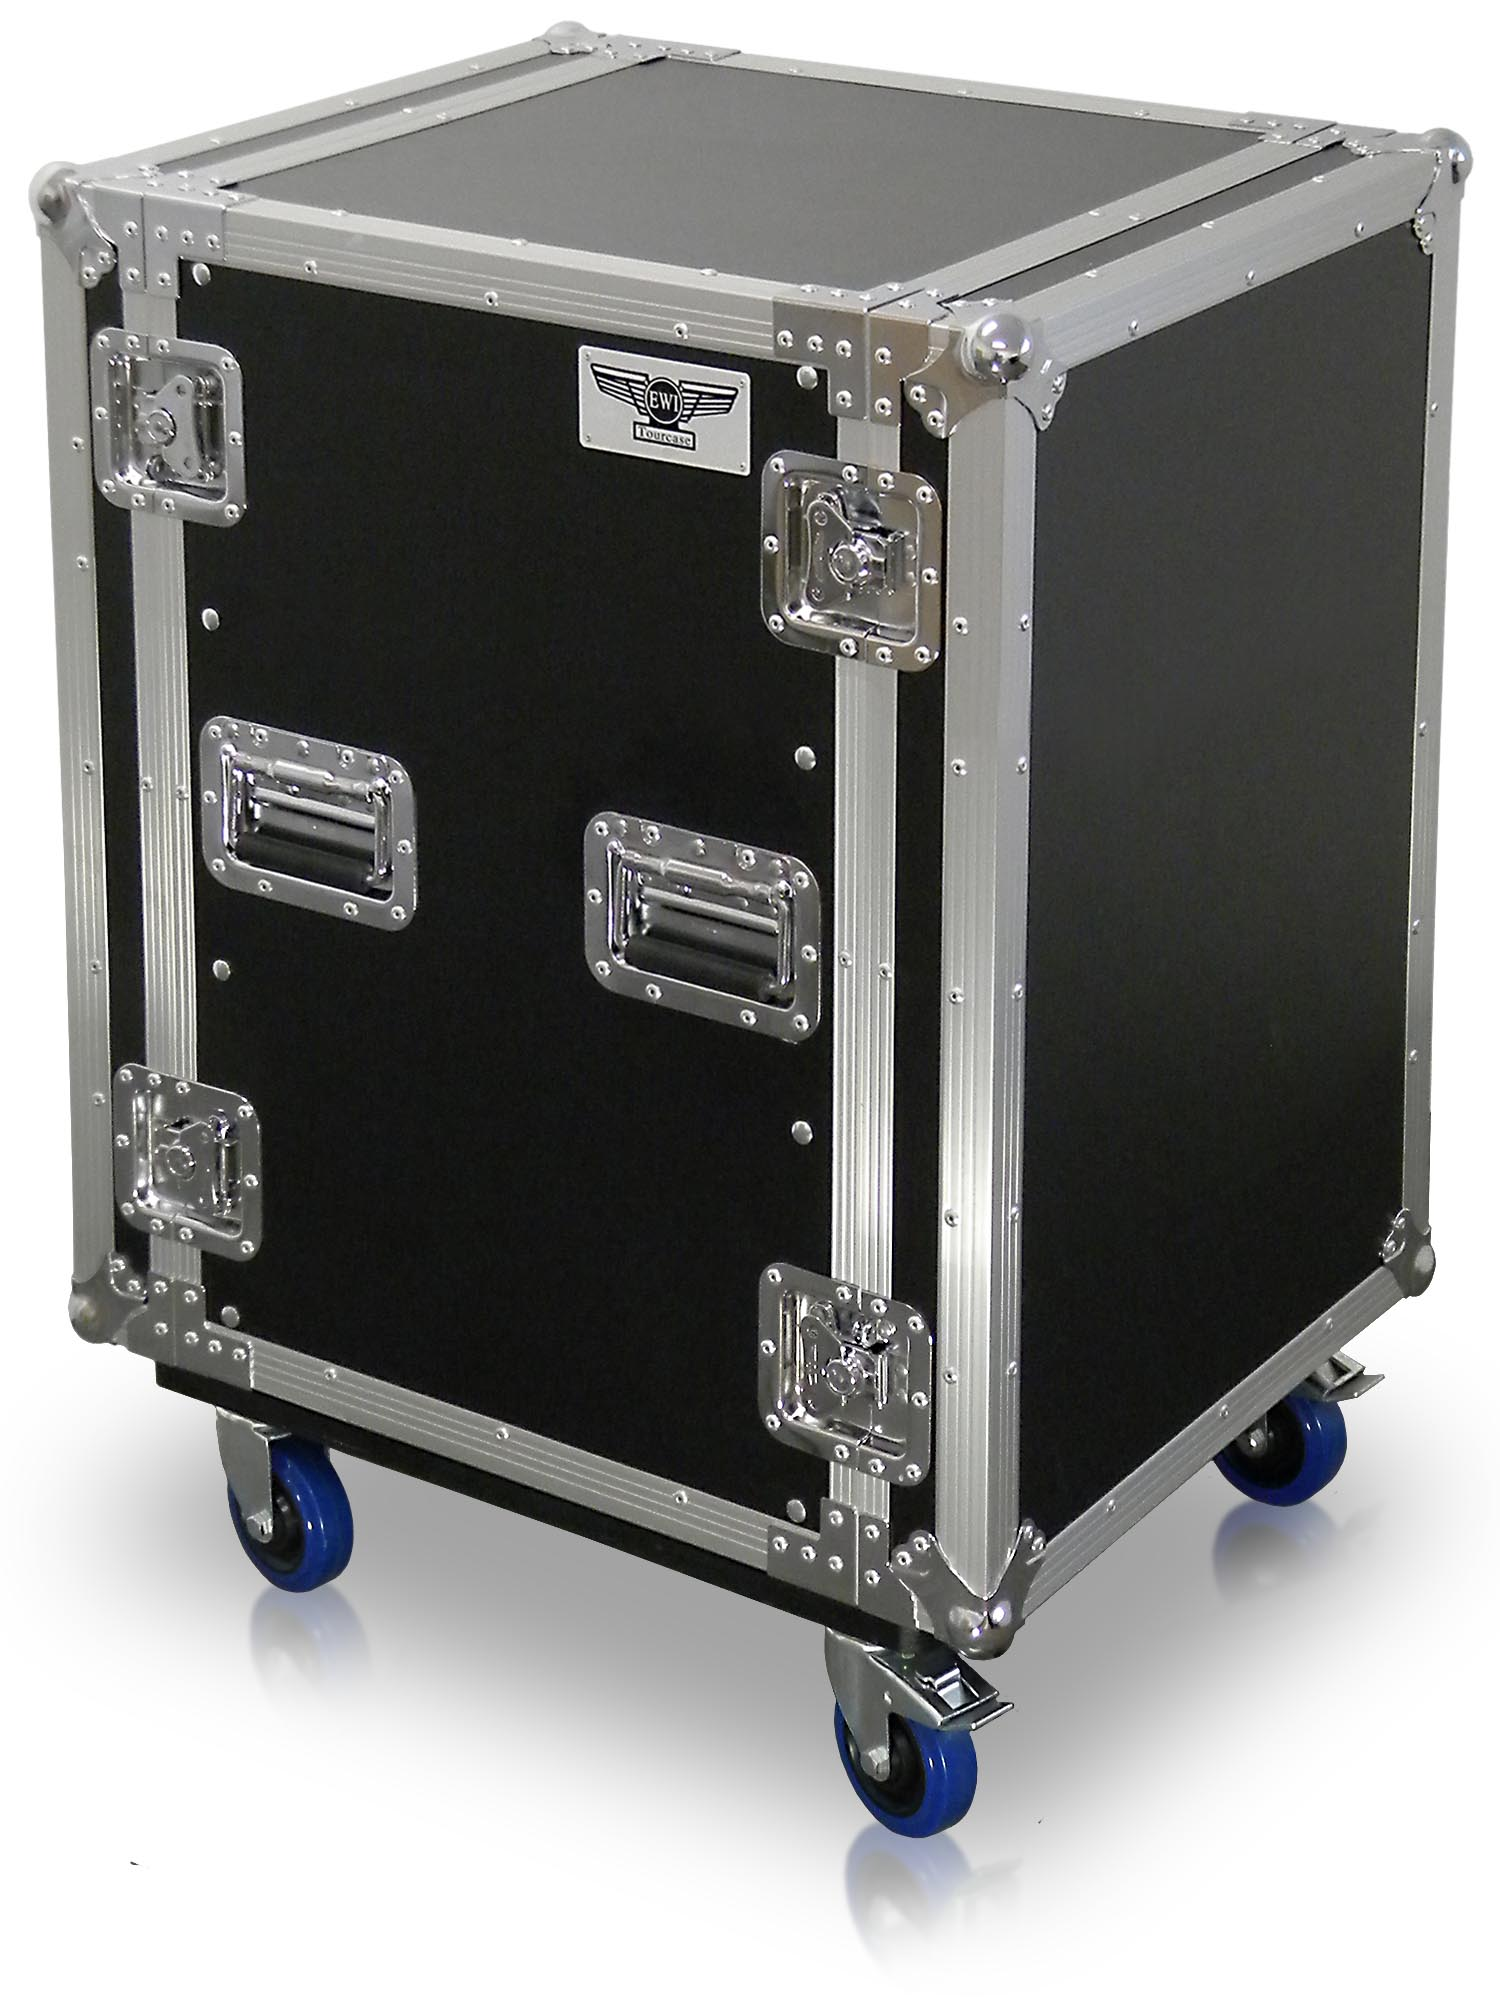 R16u16SpaceHeavyDutyAmplifierRackCaseWithCasters